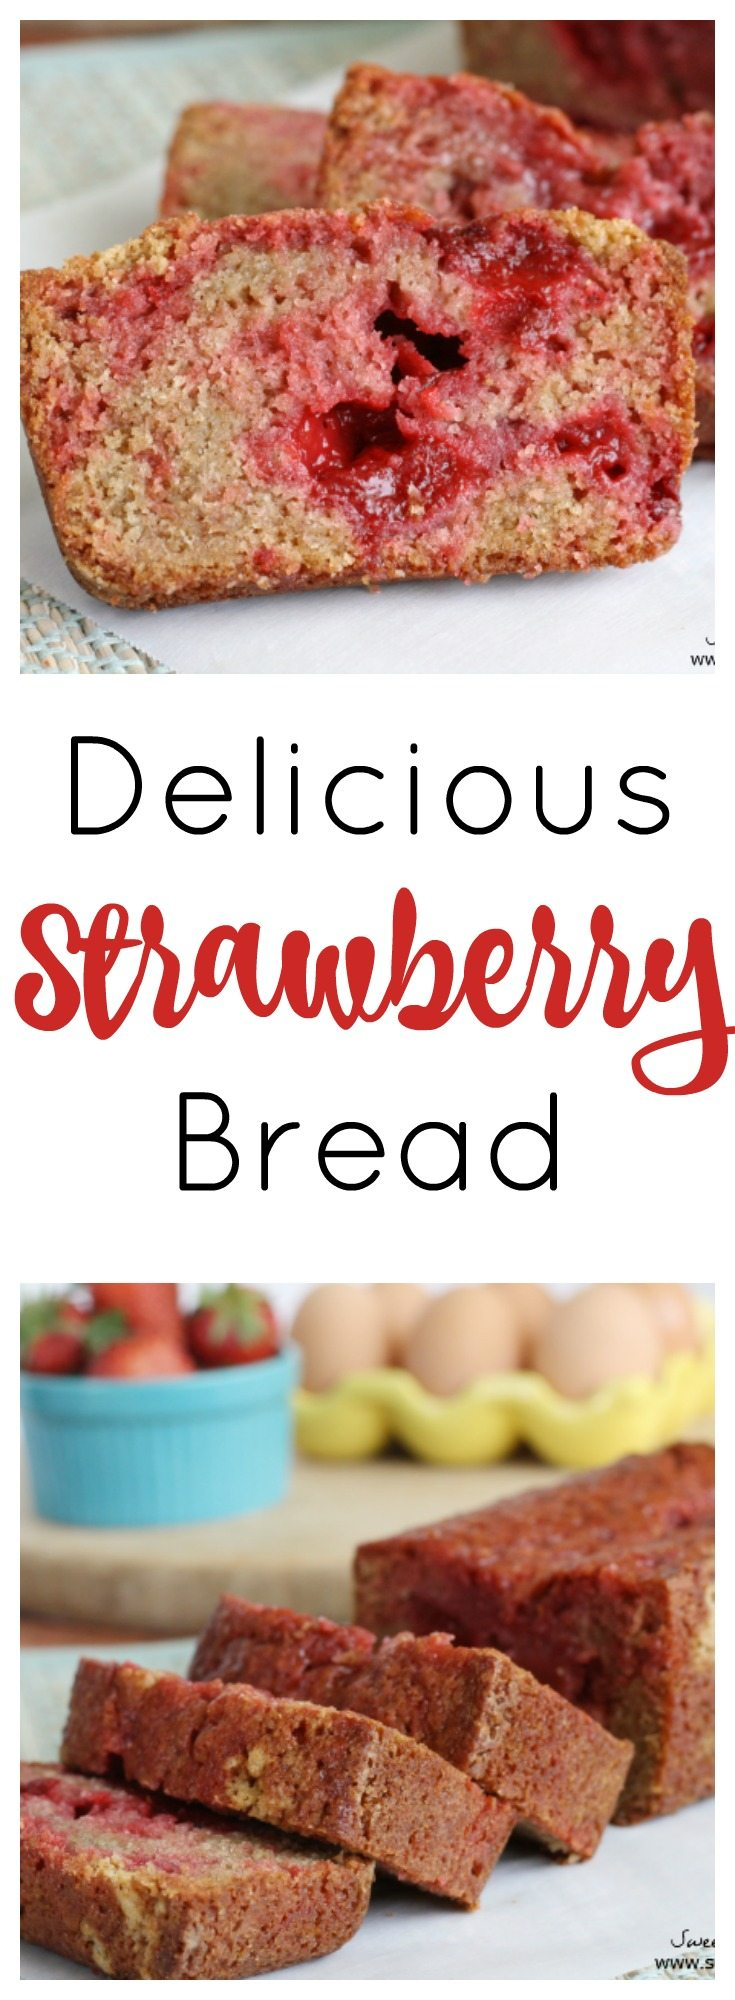 This delicious Strawberry Bread is so moist and bursting with strawberry flavor.